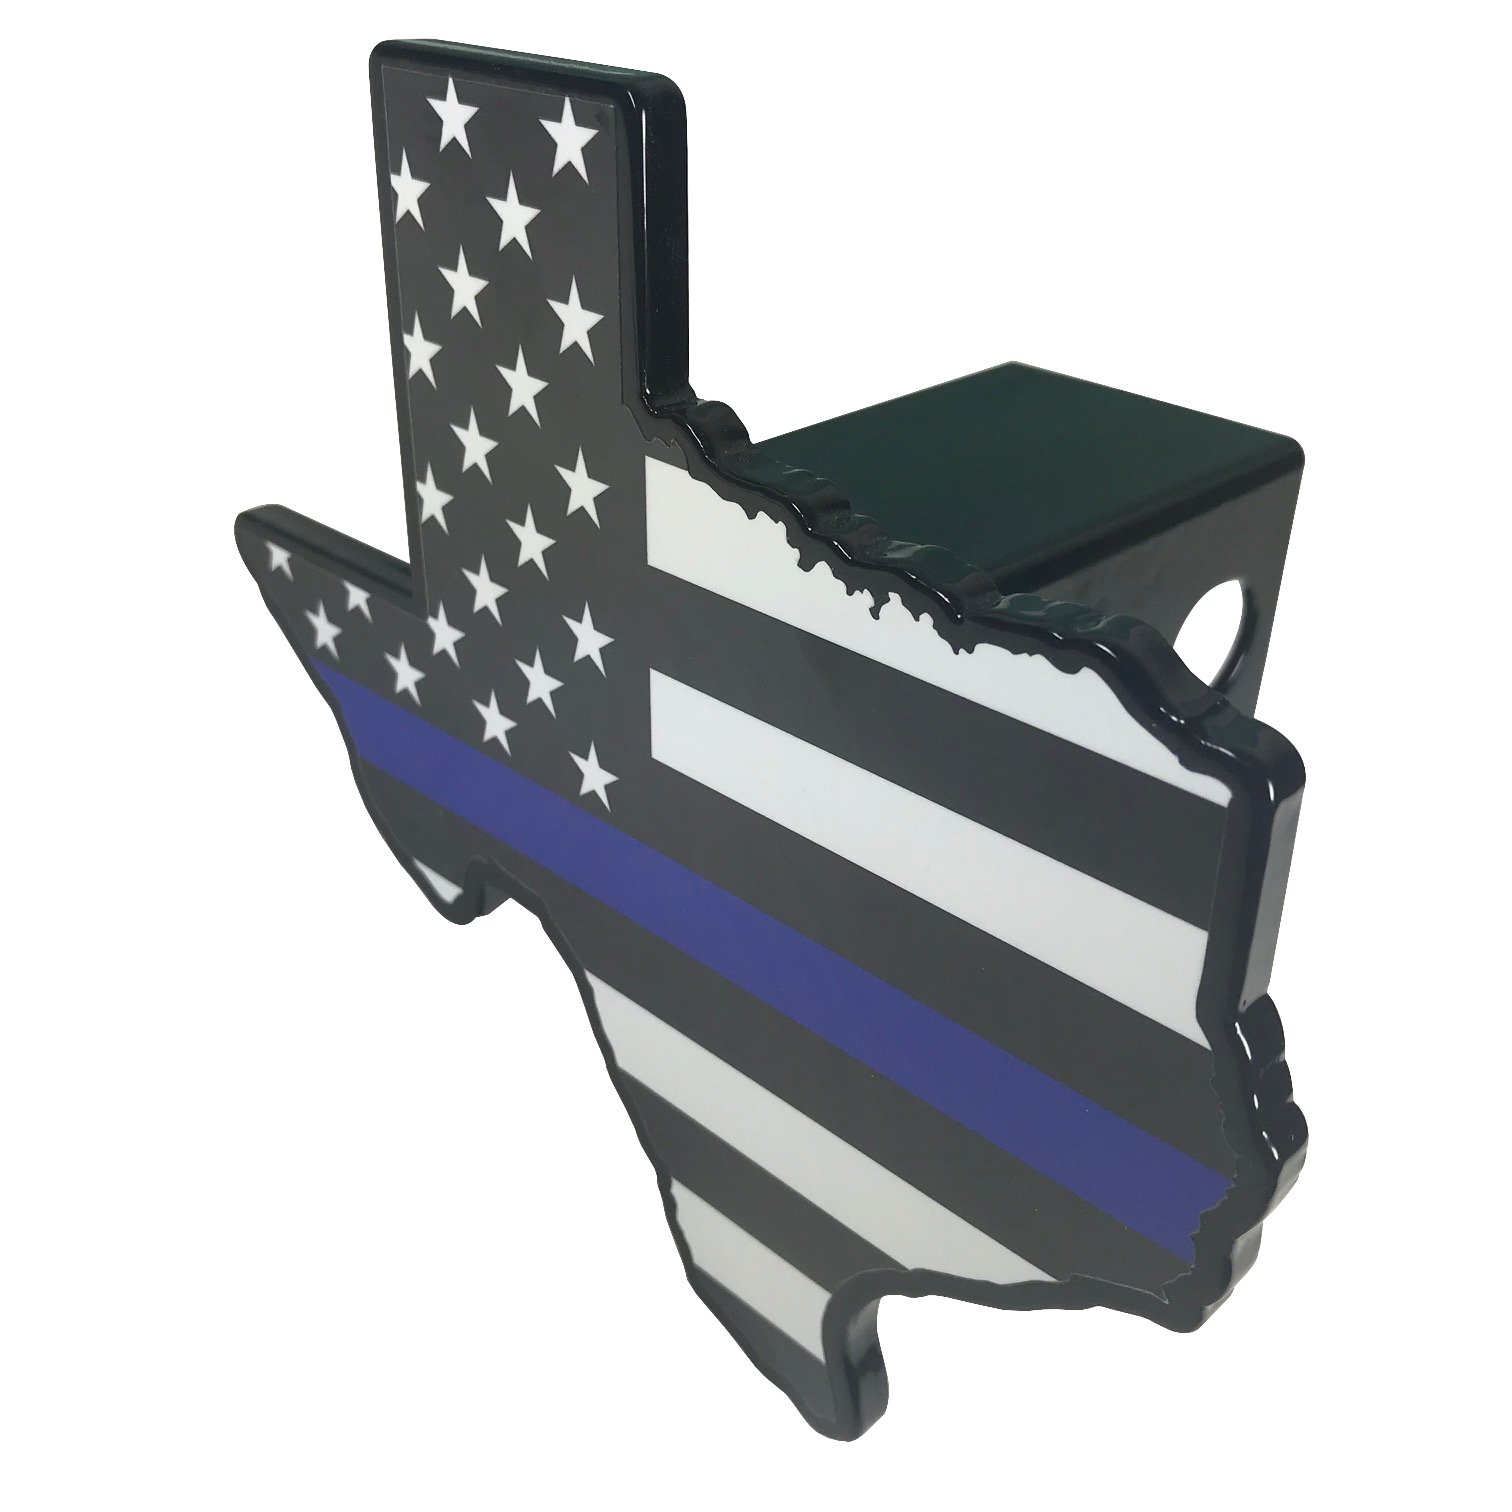 AMG Auto Emblems Premium State of Texas Police Flag (Texas Shaped) SOLID METAL Heavy Duty Hitch Cover by AMG Auto Emblems